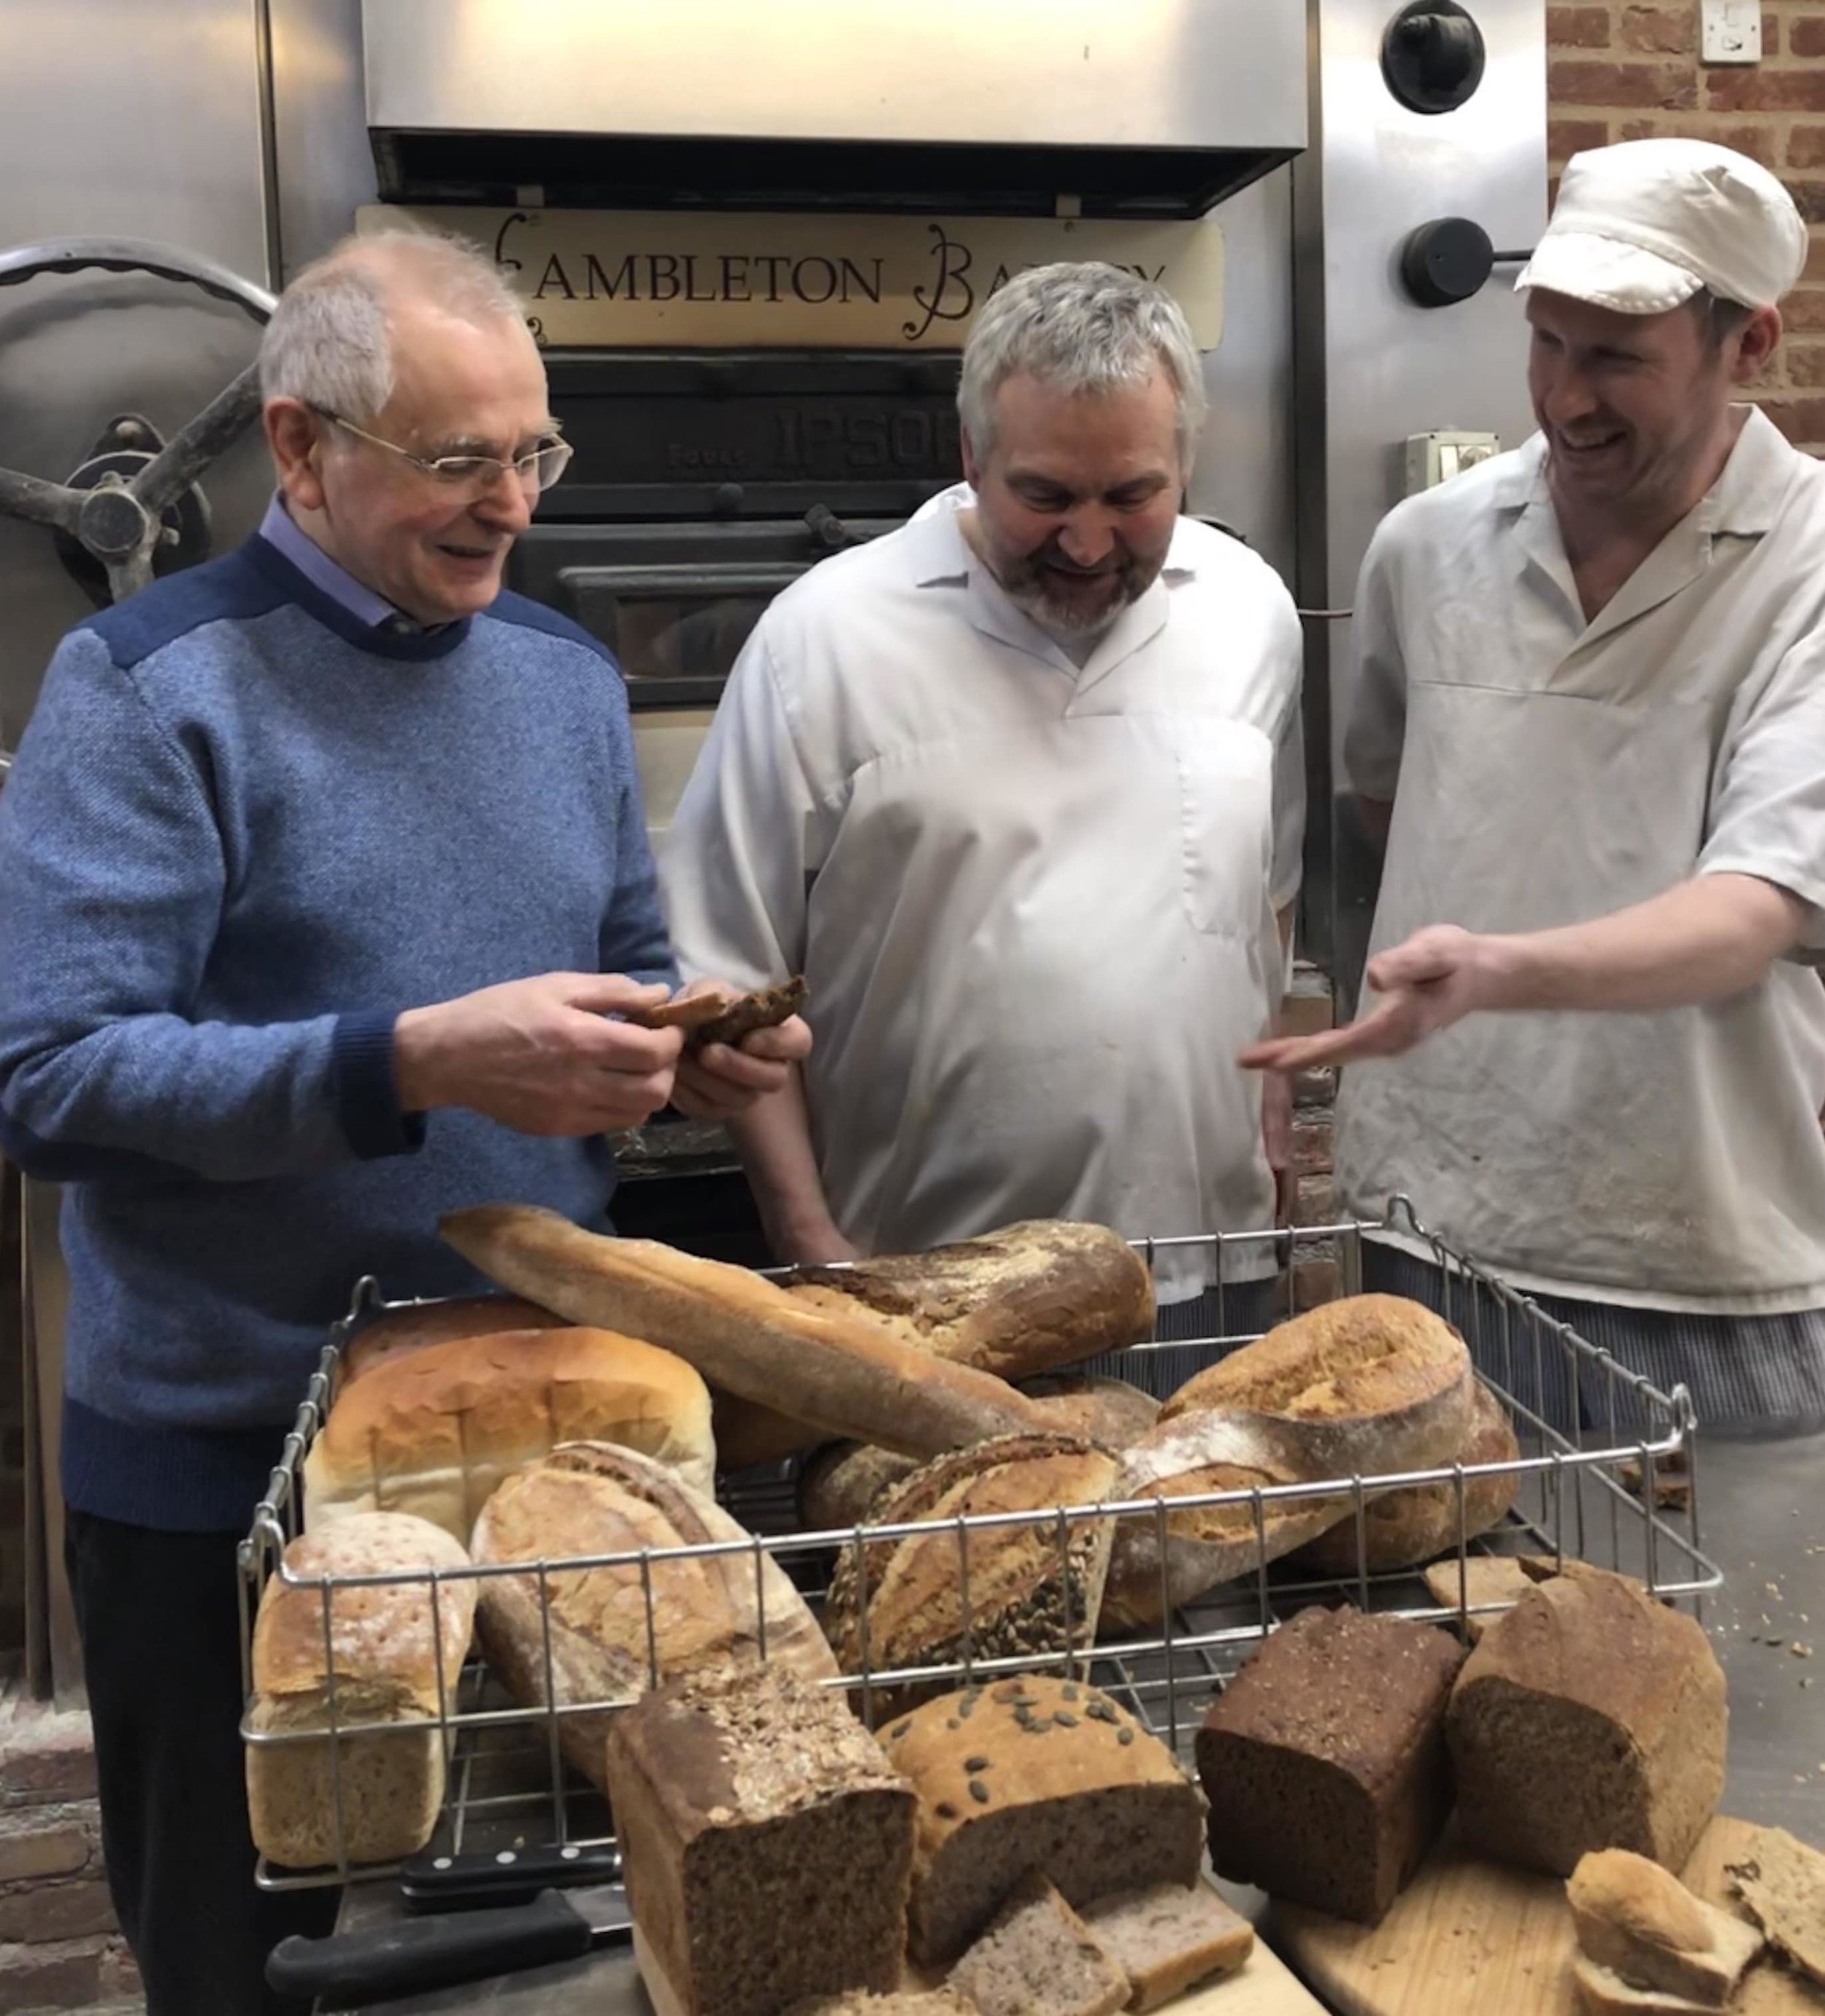 Andrew_whitley_hambleton_bakery_Julian_Scott.JPEG